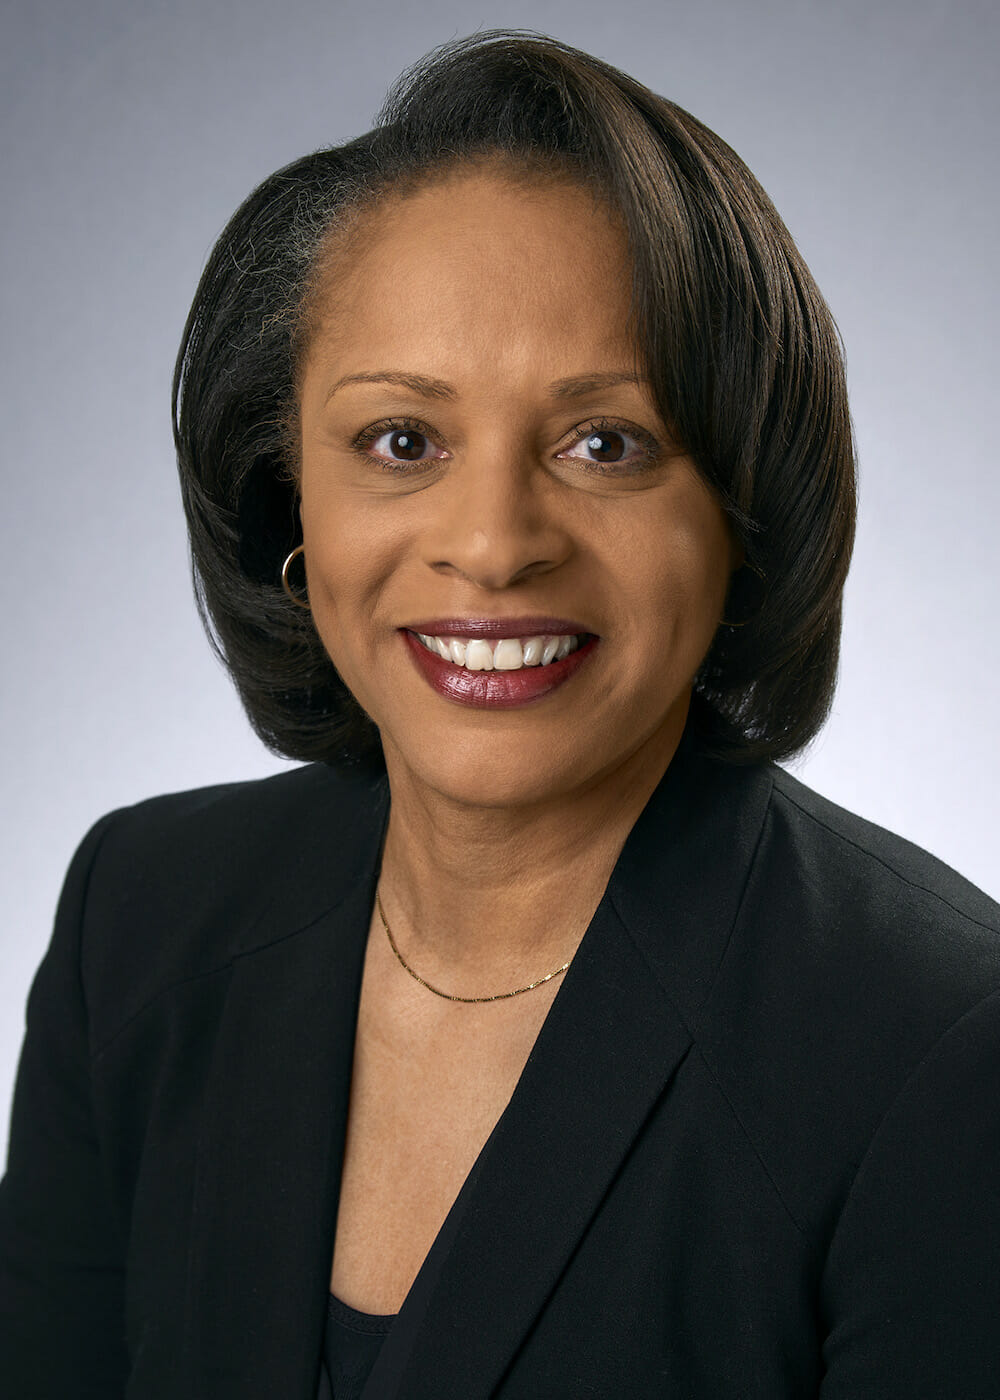 Merck's Celeste Warren explains why diversity and inclusion is good for business